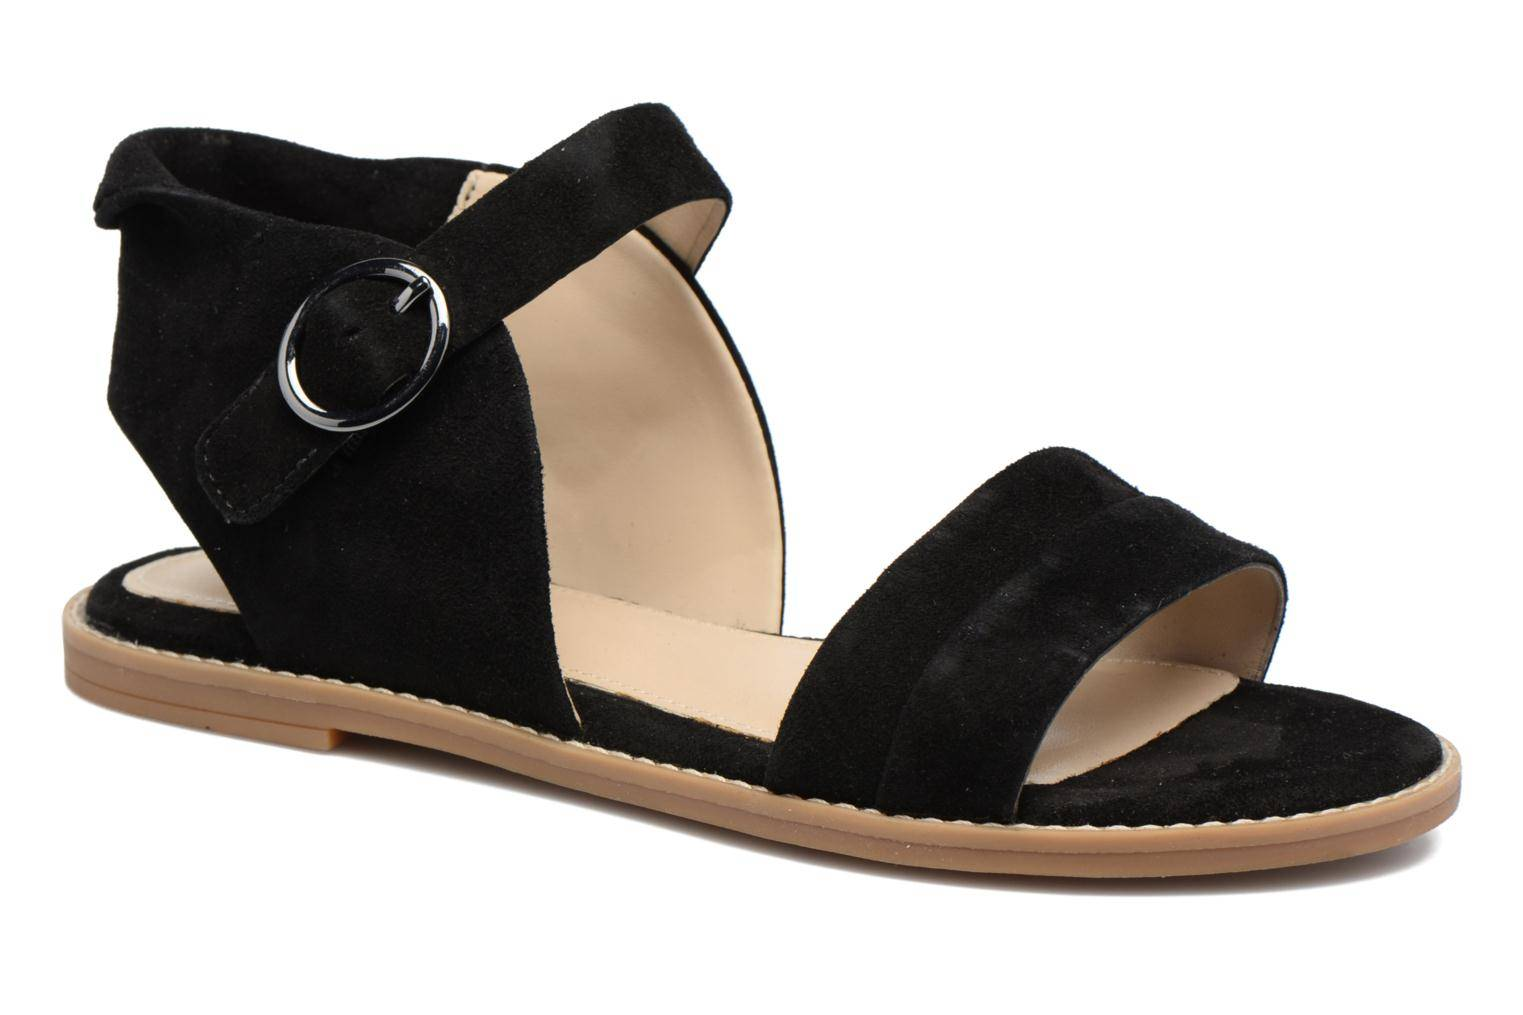 Hush Puppies - Abia by  - Sandaalit Naisille  / Musta